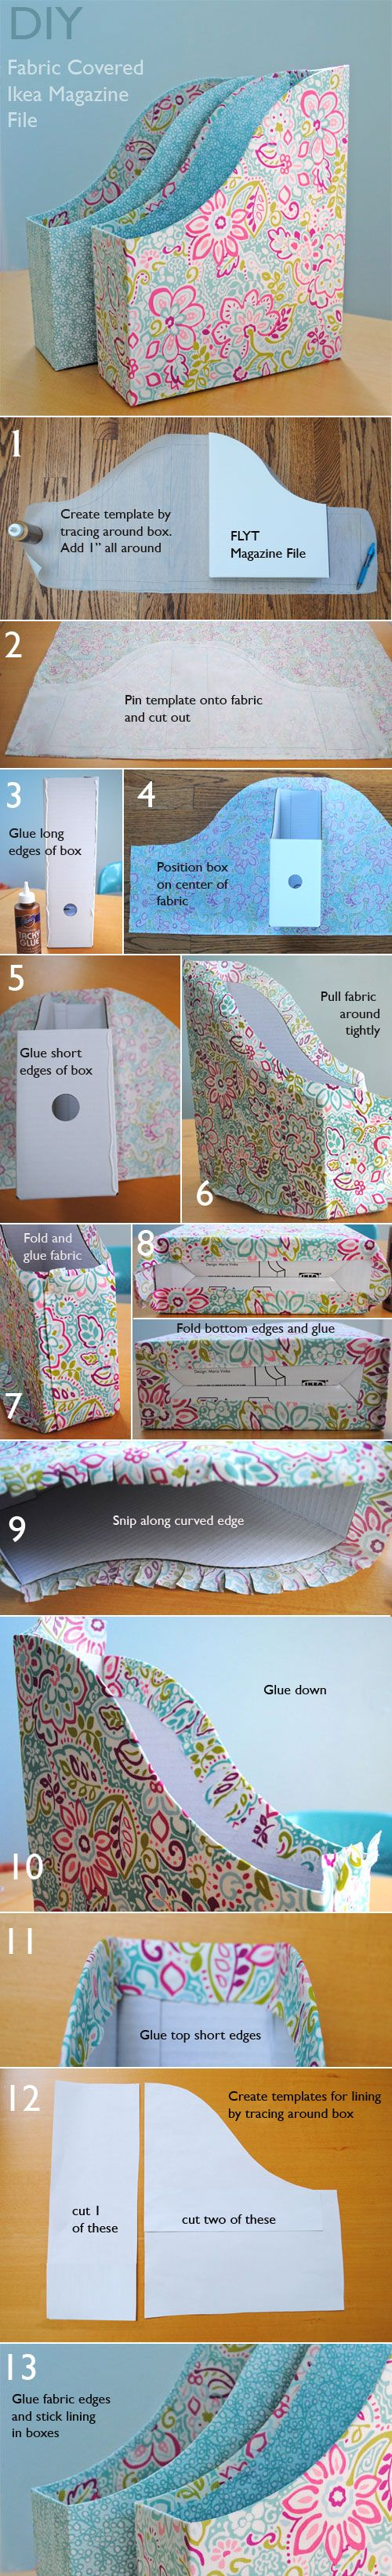 DIY: Fabric covered magazine files